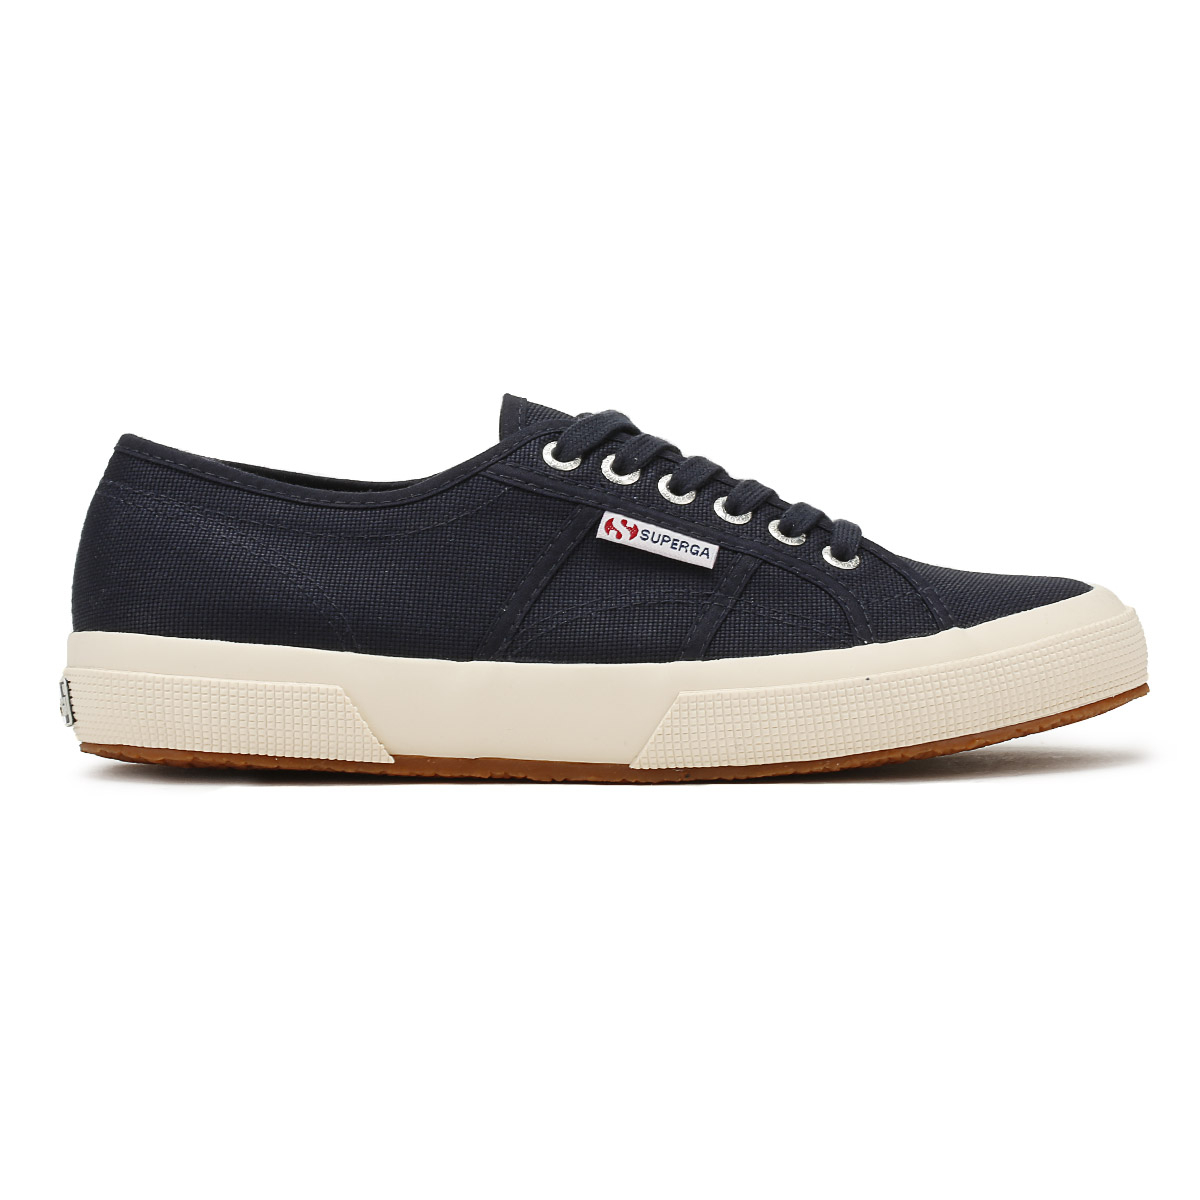 Superga Unisex Trainers Navy 2750 Cotu Sport  Casual Lace Up   Sport Herren Damenschuhe Schuhes 77f2f0